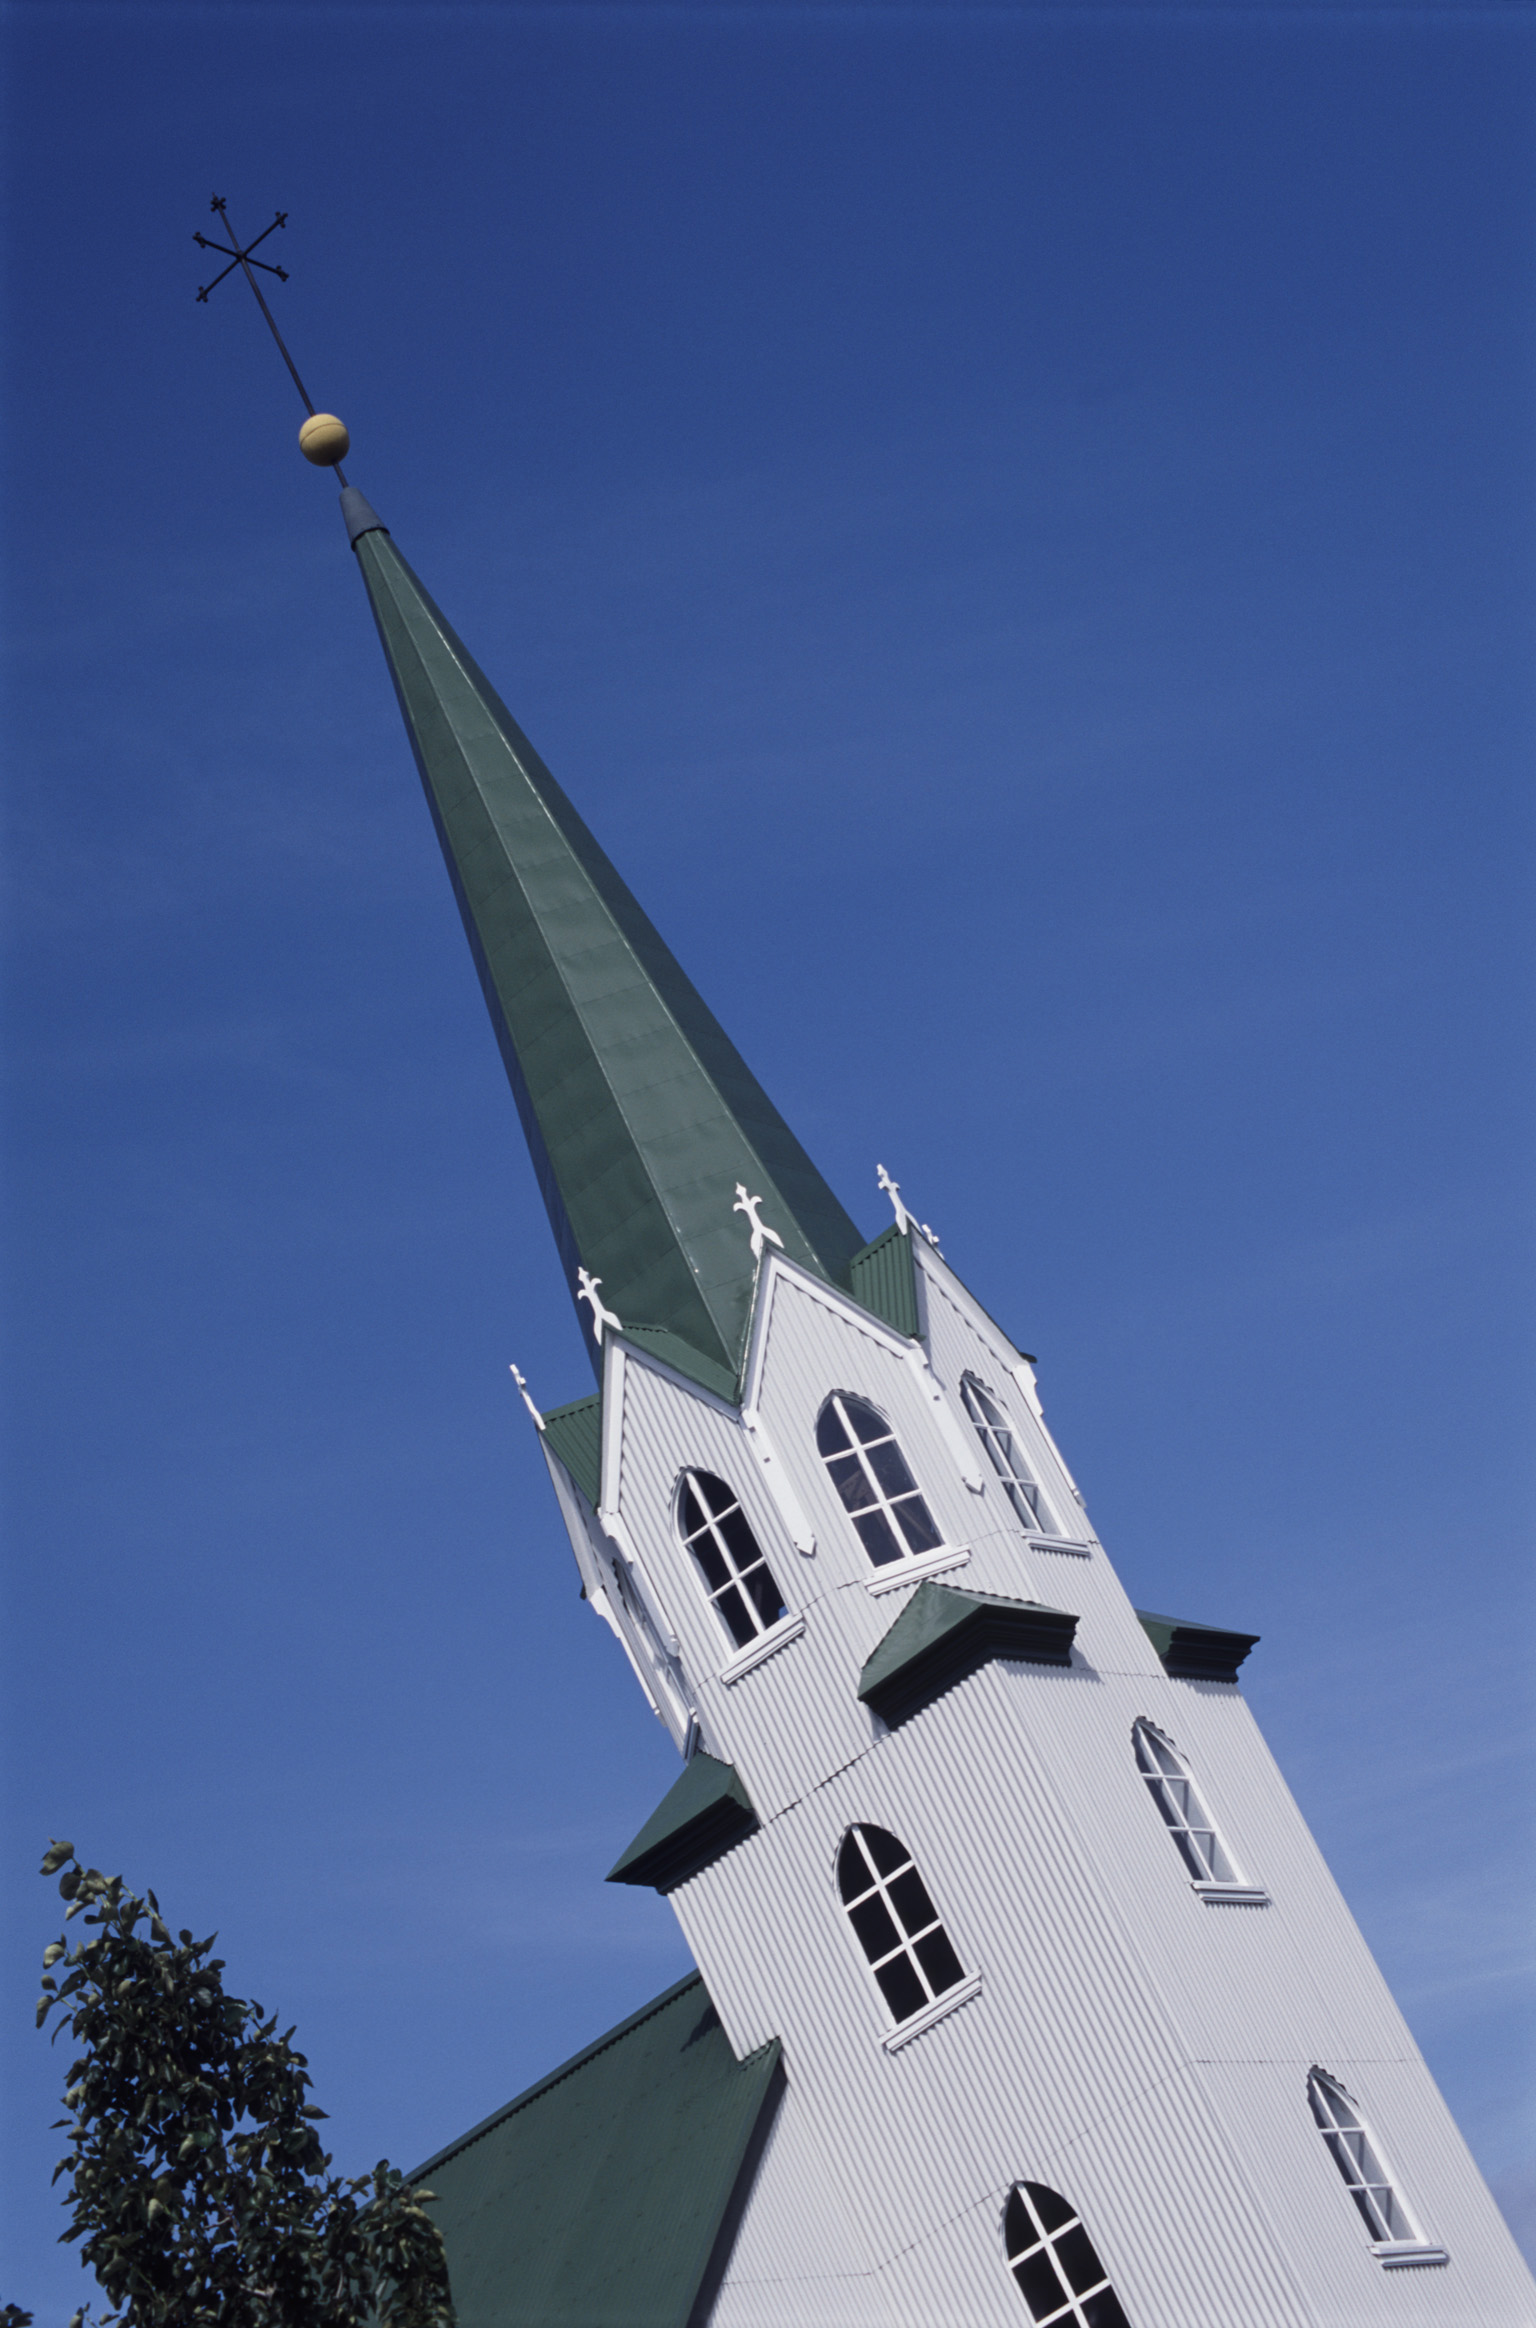 Elegant church spire in Reykjavik , Iceland, with traditional architecture of a corrugated iron roof against a blue sky